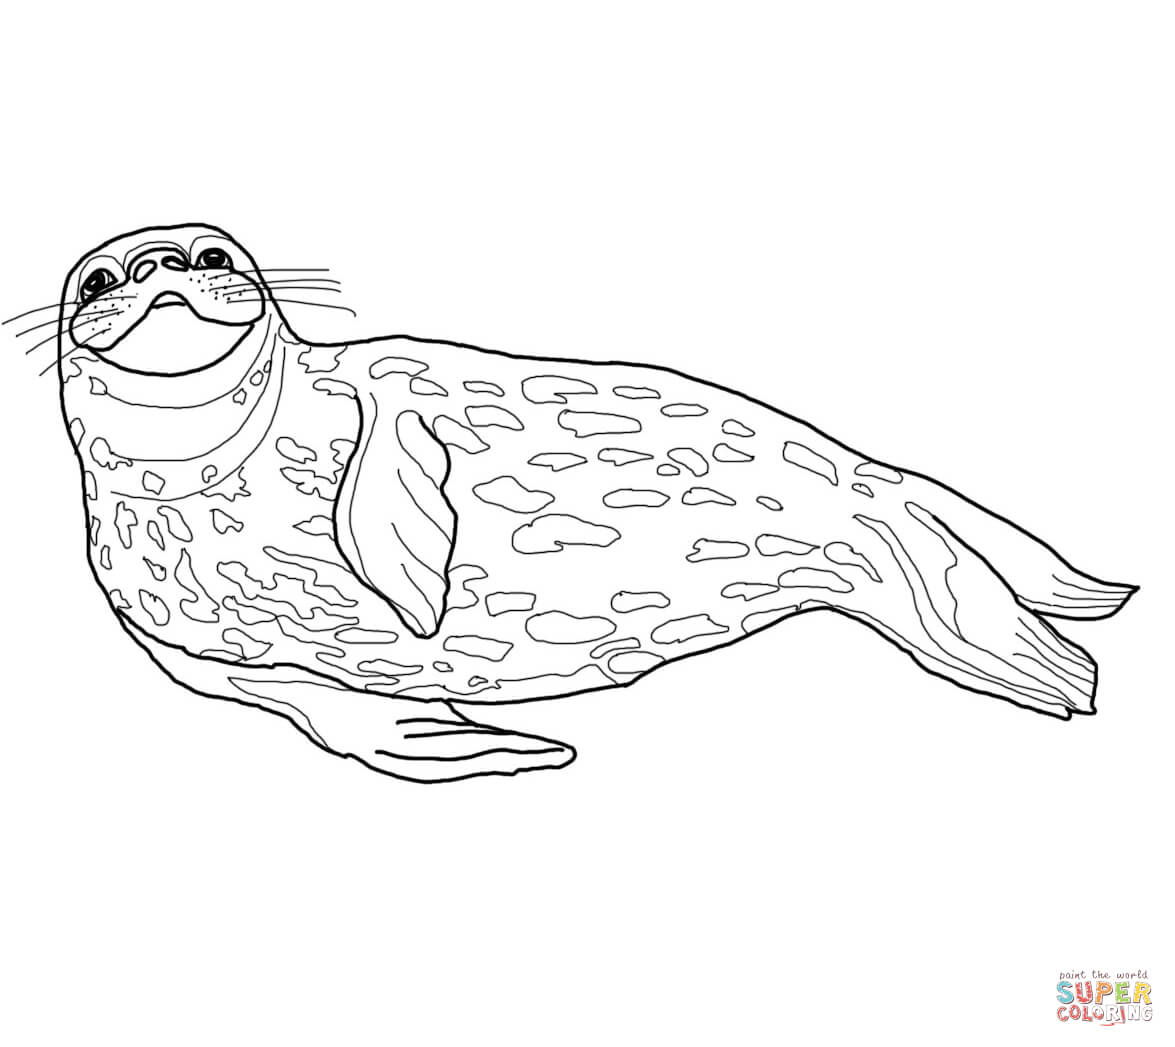 Leopard Seal coloring #12, Download drawings